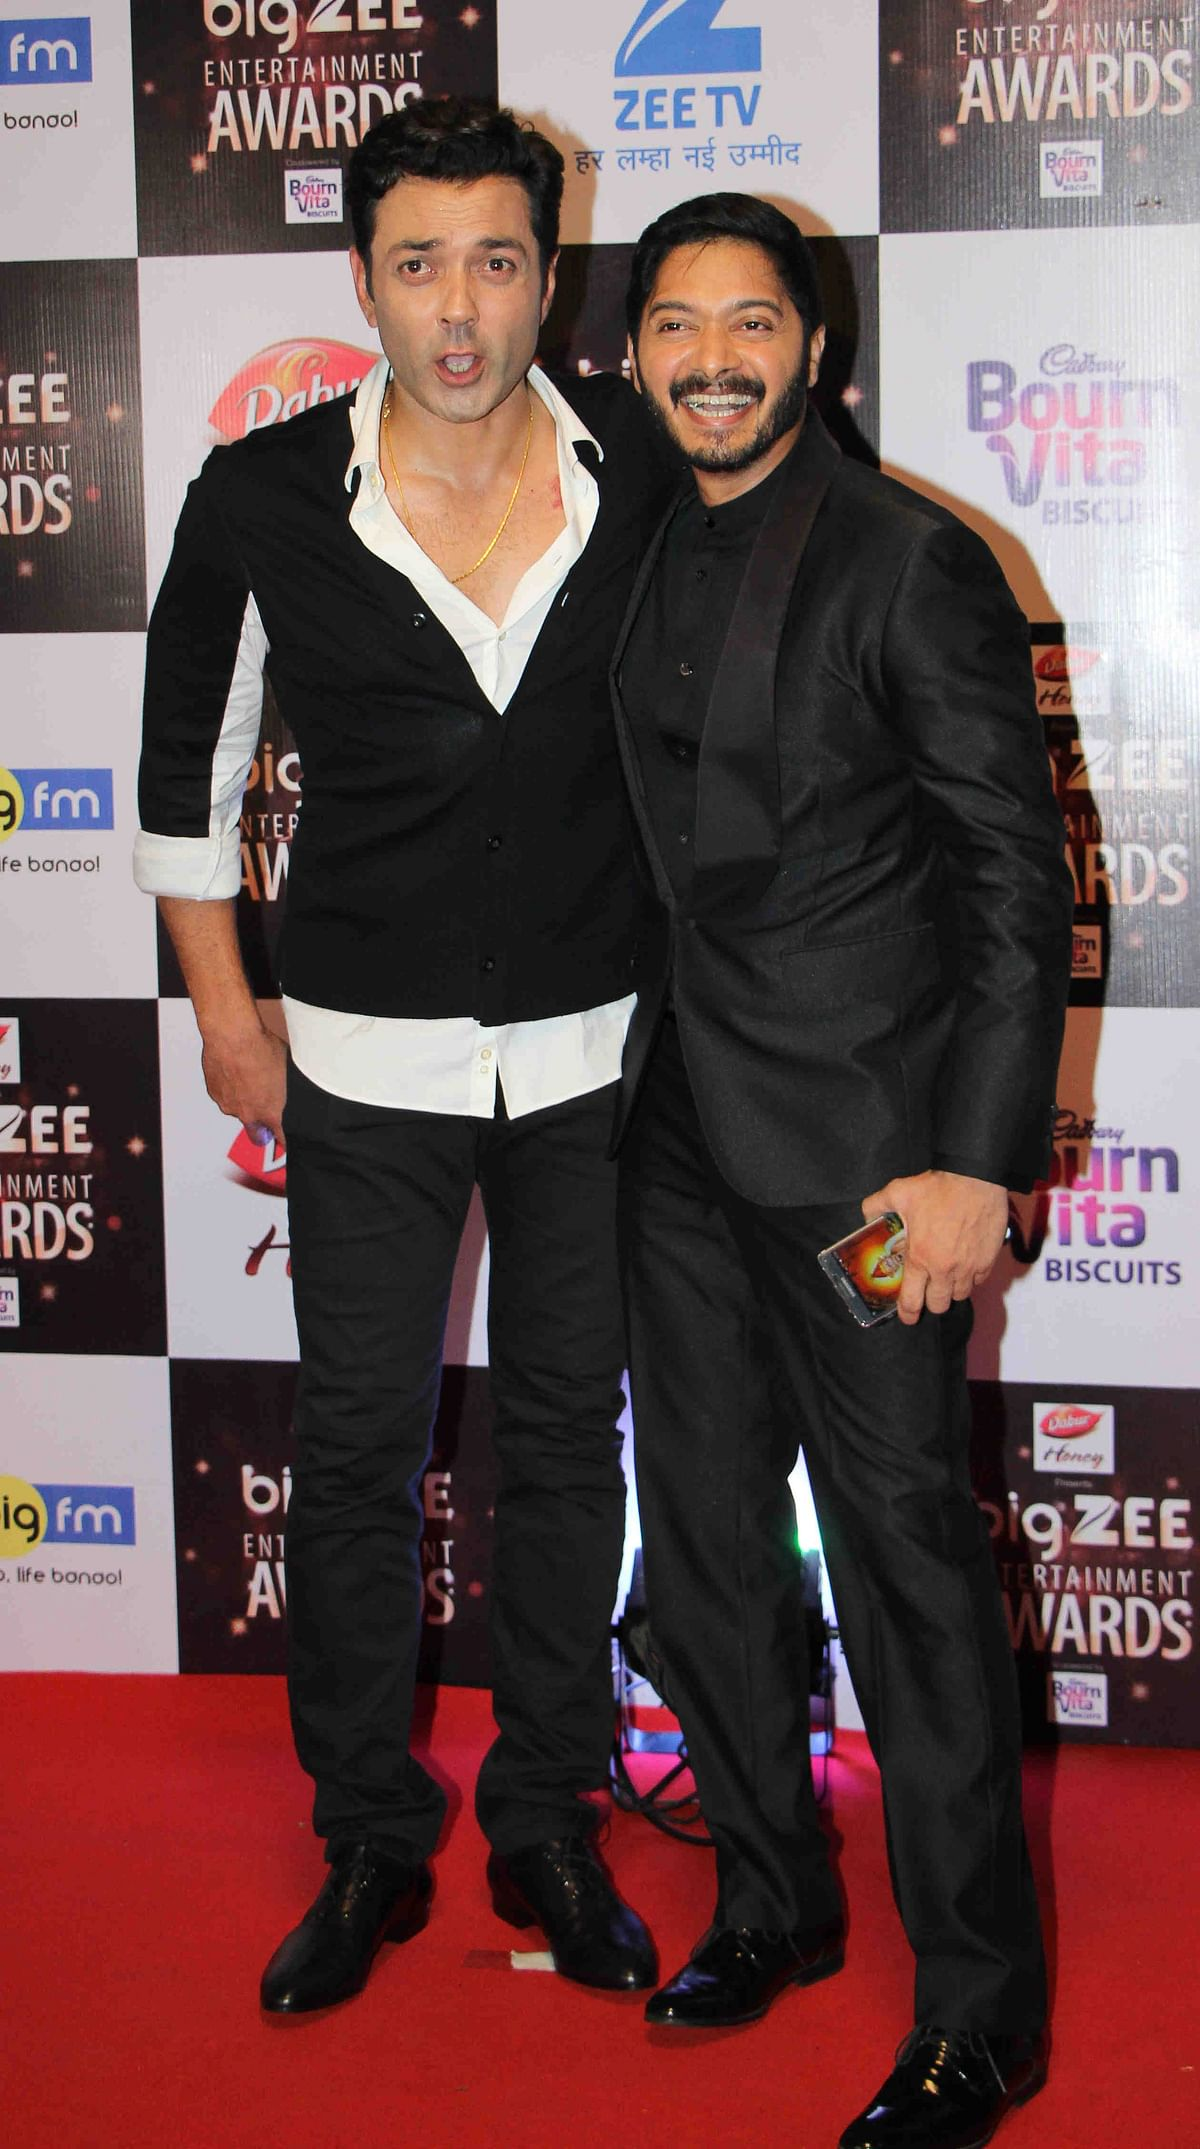 In this photograph taken on July 29, 2017, Indian Bollywood actors Bobby Deol (L) and Shreyas Talpade (R) attend the BIG ZEE Entertainment Awards 2017 ceremony in Mumbai. / AFP PHOTO / STR